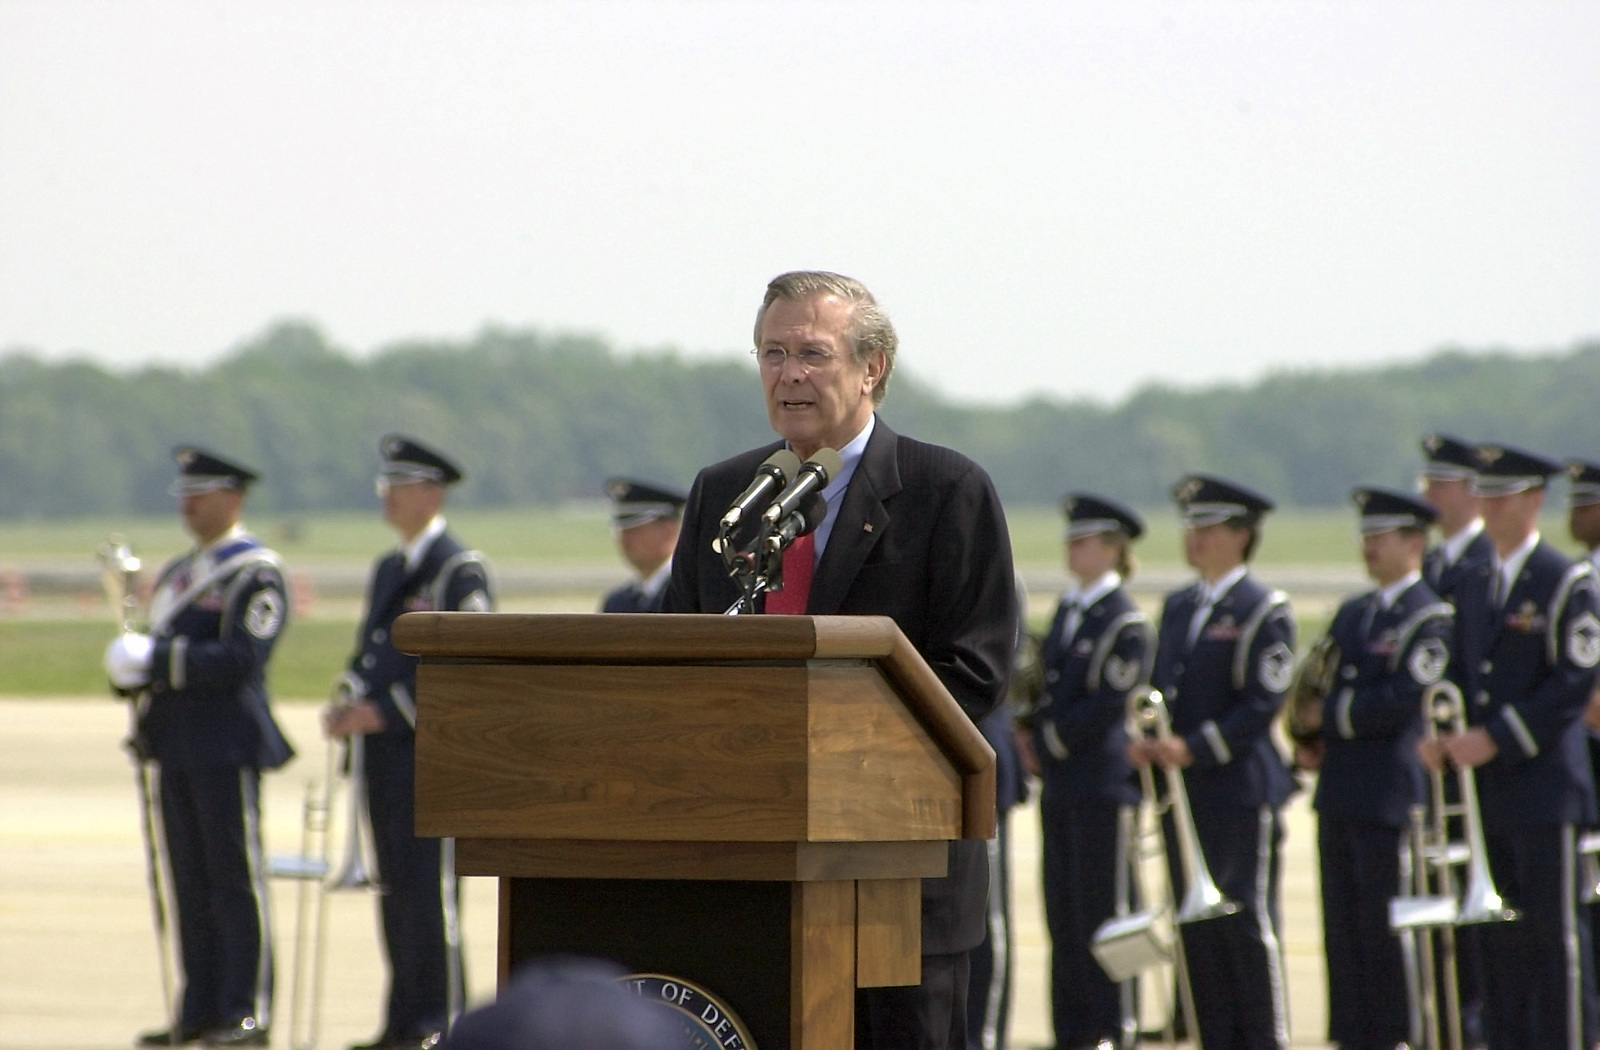 U.S. Secretary of Defense (SECDEF) The Honorable Donald H. Rumsfeld delivers a speech during the Joint Services Open House Ceremony, held at Andrews Air Force Base, Md. (U.S. Air Force photo by MASTER SGT. Glenn Wilkewitz) (Released)